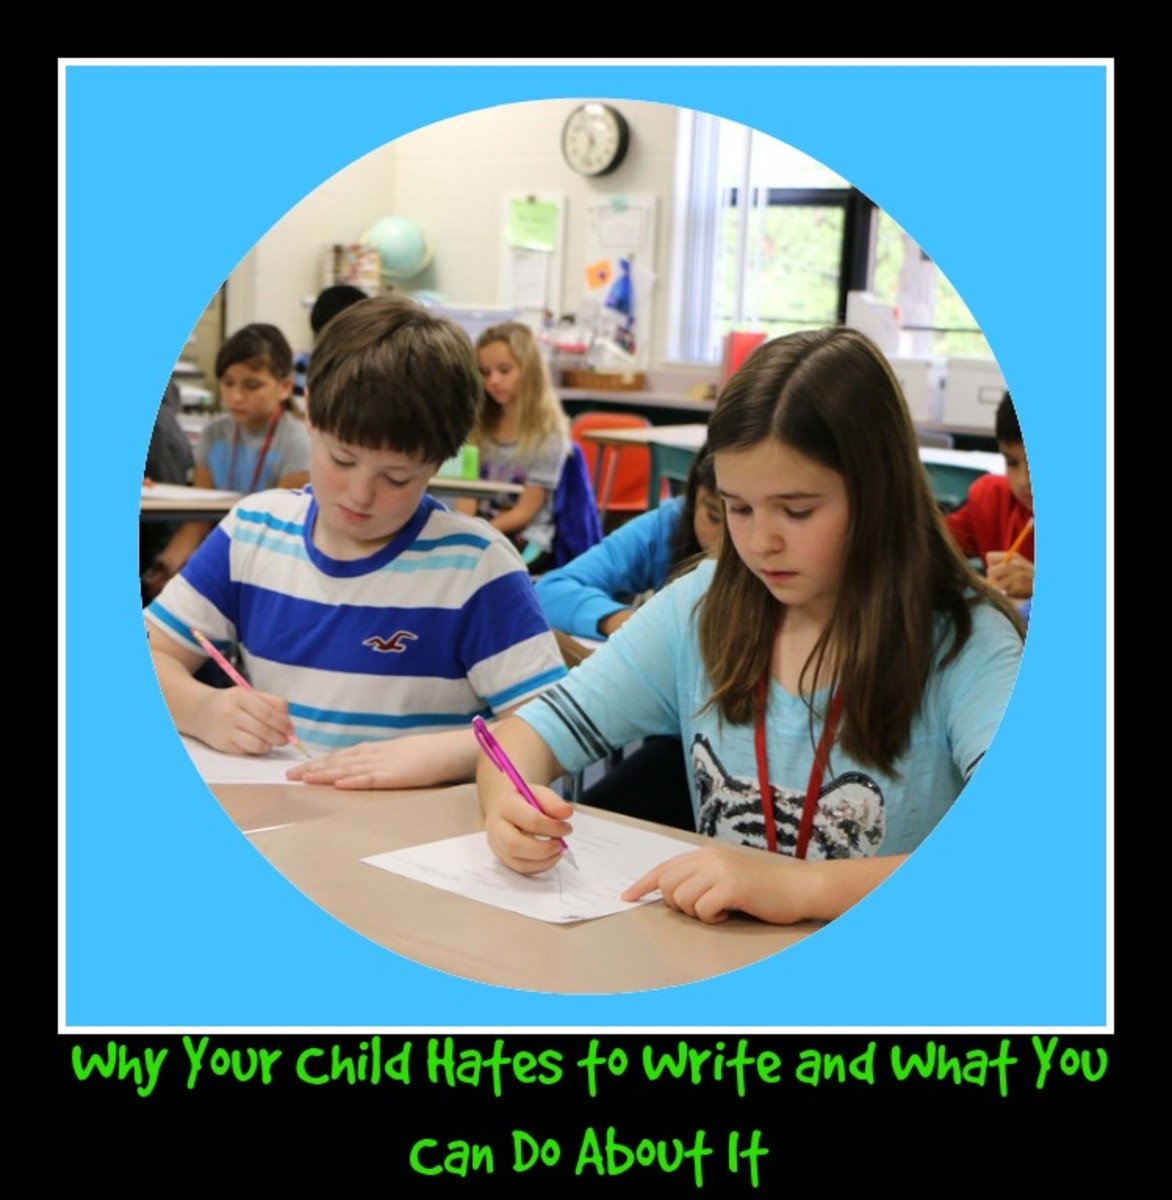 Many teachers require children to write in  journals each day. What better way to make them hate writing?